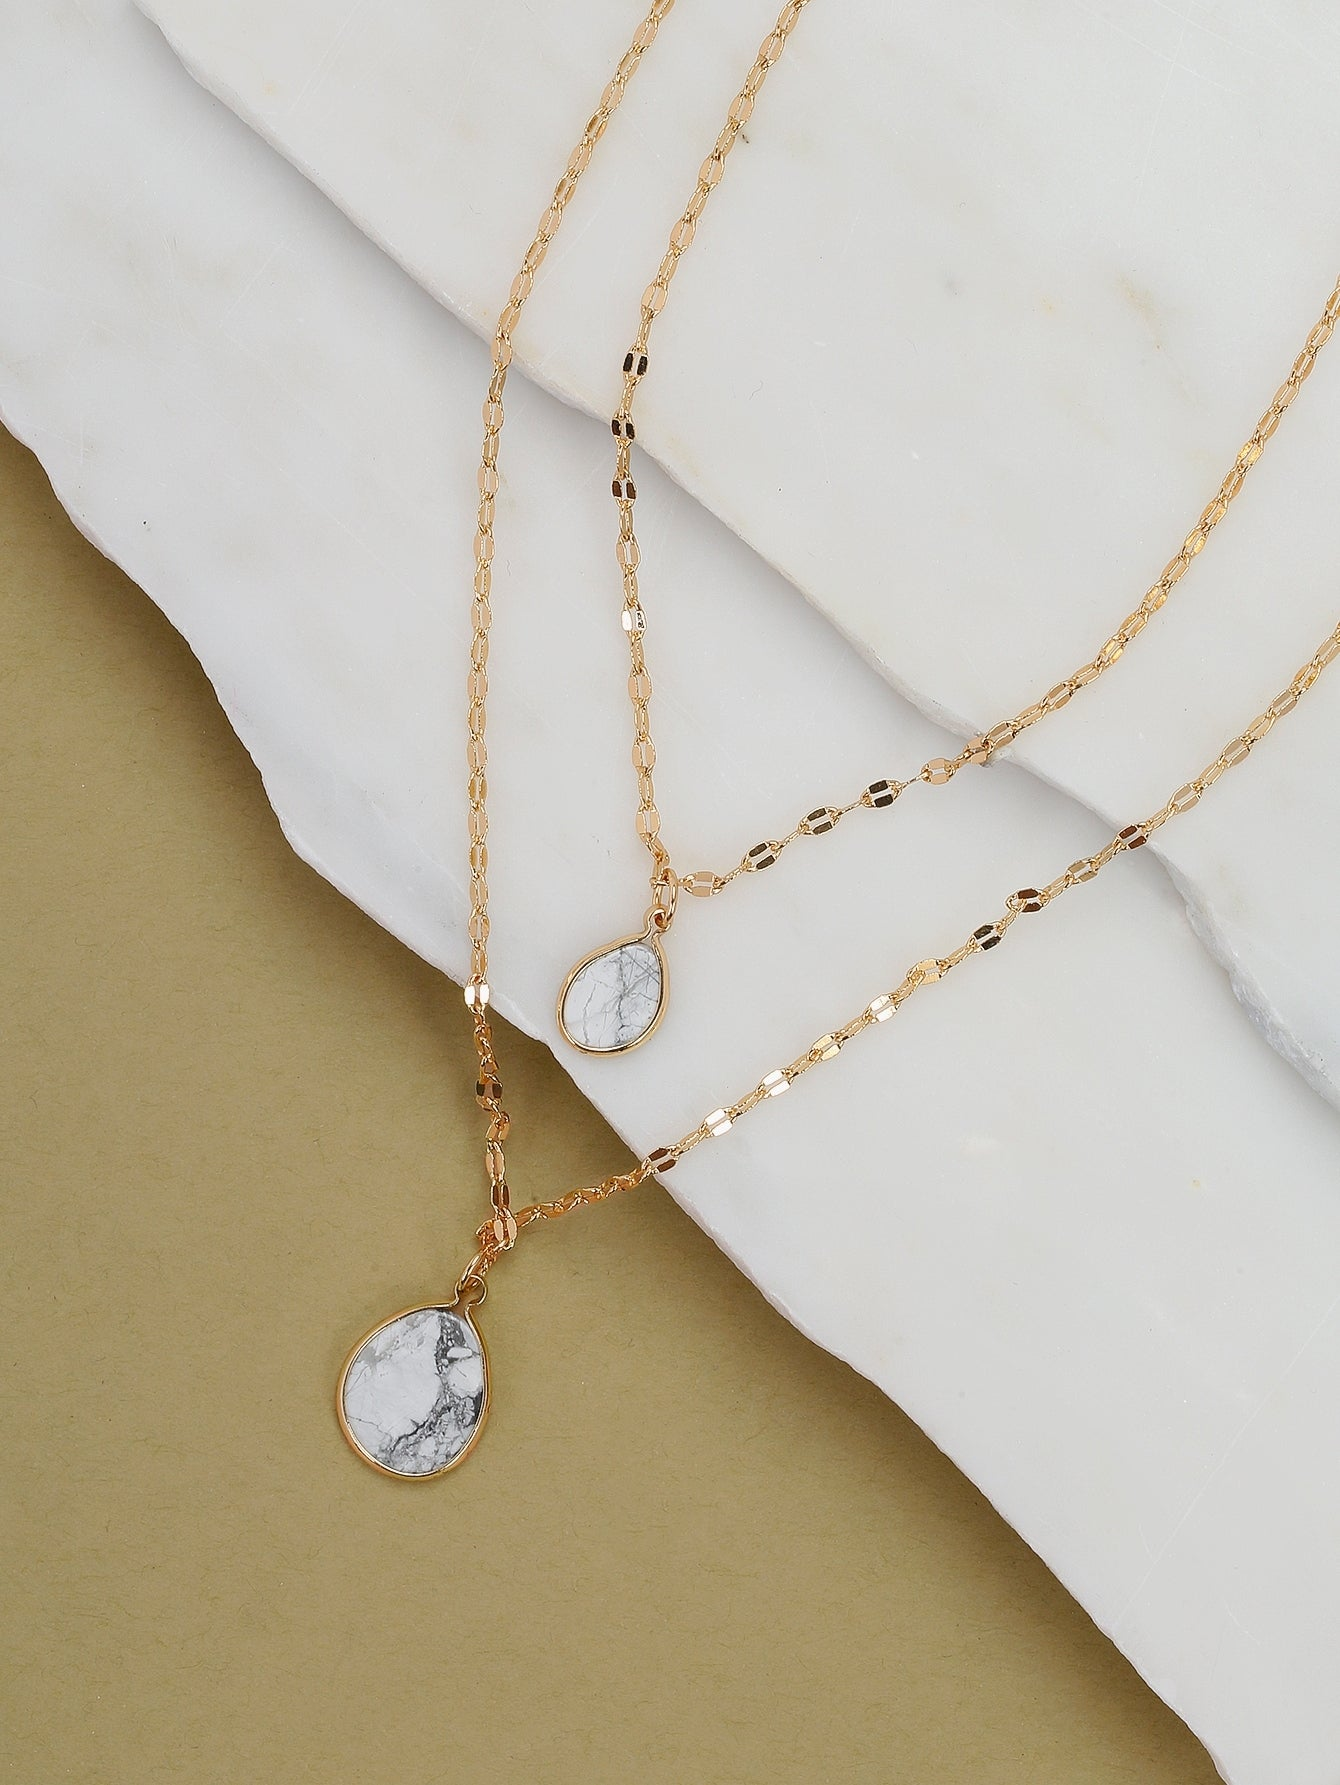 Golden Teardrop Dainty Chain Marble Pendant Necklace